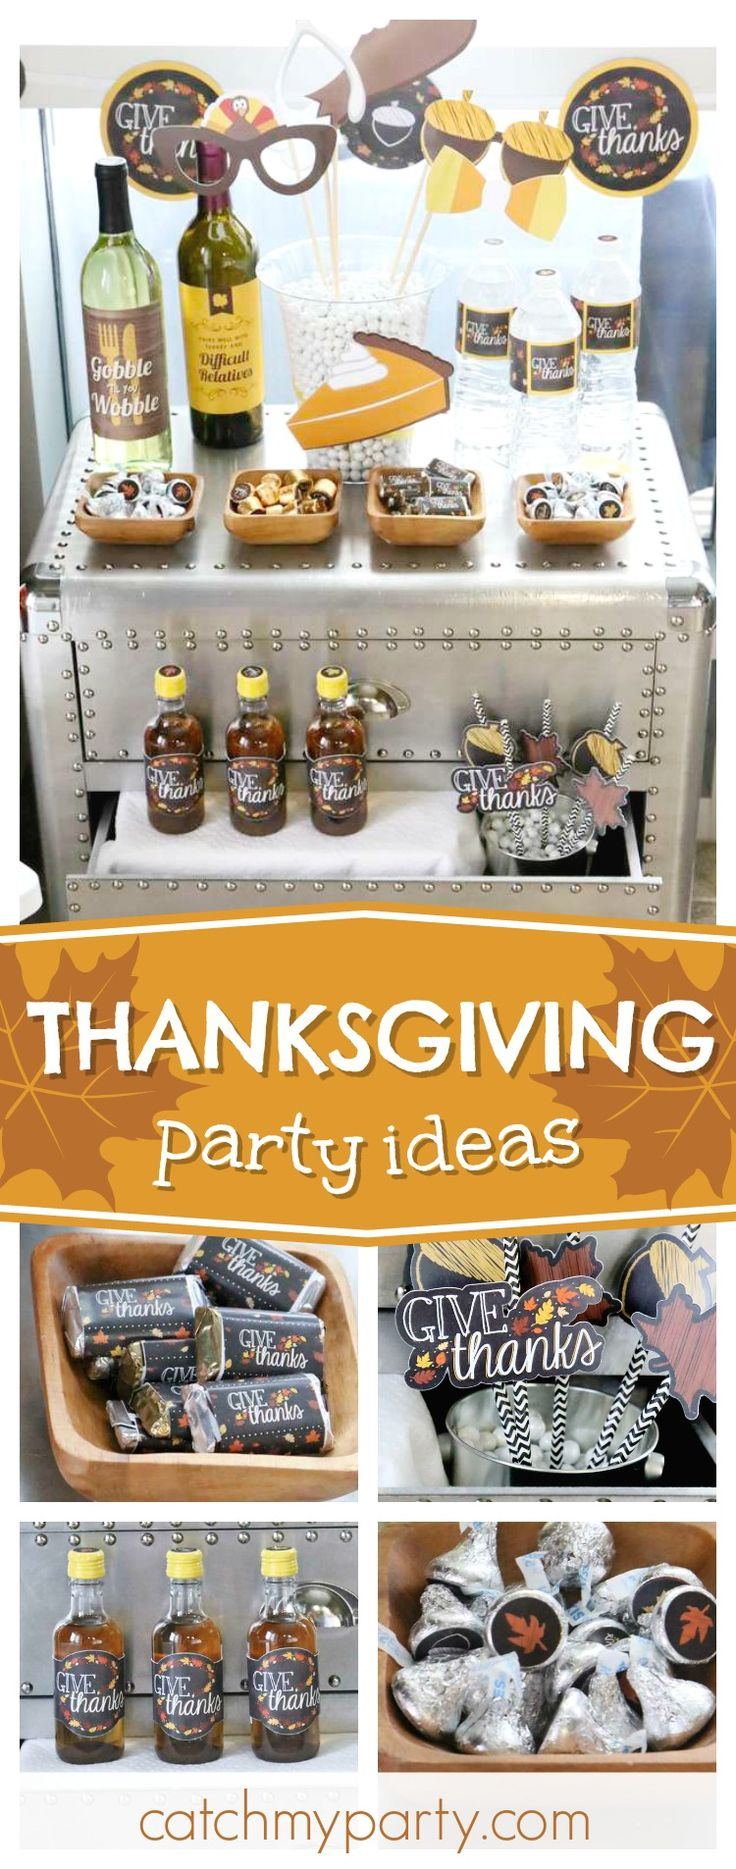 Celebrate Thanksgiving with a wonderful party like this one! The photo booth props are so cool!! See more party ideas and share yours at CatchMyParty.com #partyideas #thanksgiving